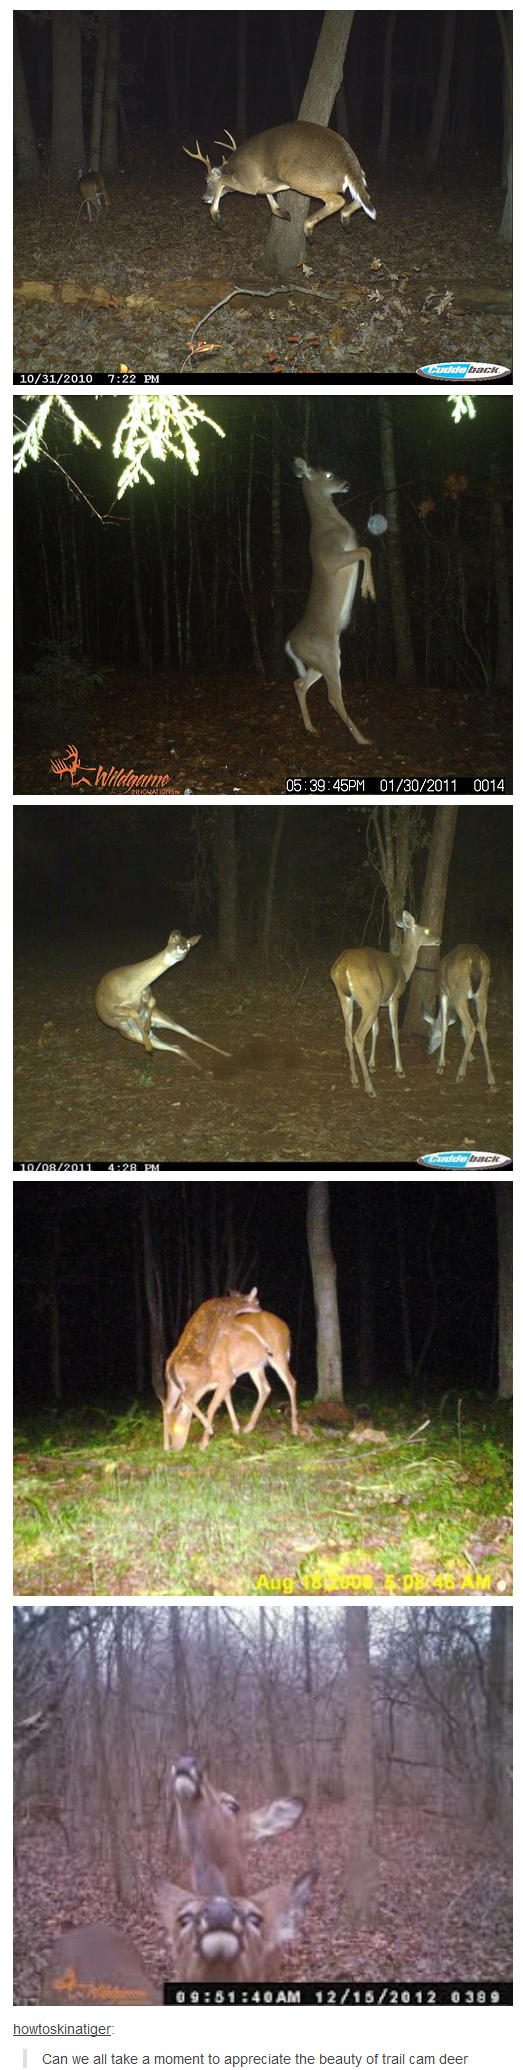 Funny Trail Cam Pictures : funny, trail, pictures, Trail, Funny, Animals,, Animal, Pictures